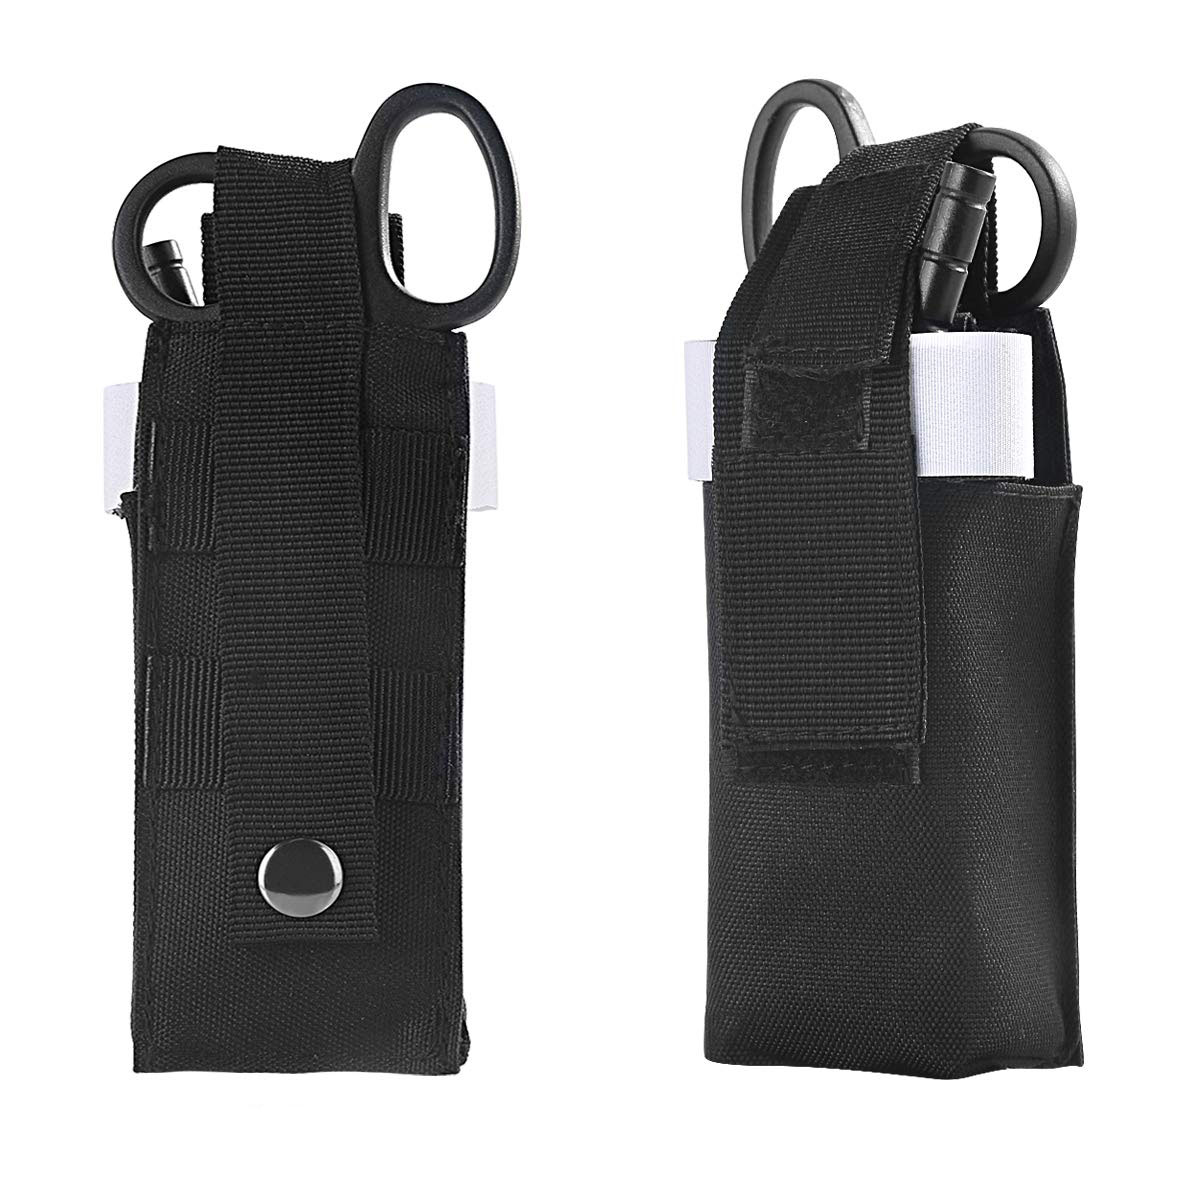 One Hand Tourniquet Trauma Shear Molle Pouch First Aid Kit for Car Vehicle Outdoor Camping Hiking in Outdoor Tools from Sports Entertainment